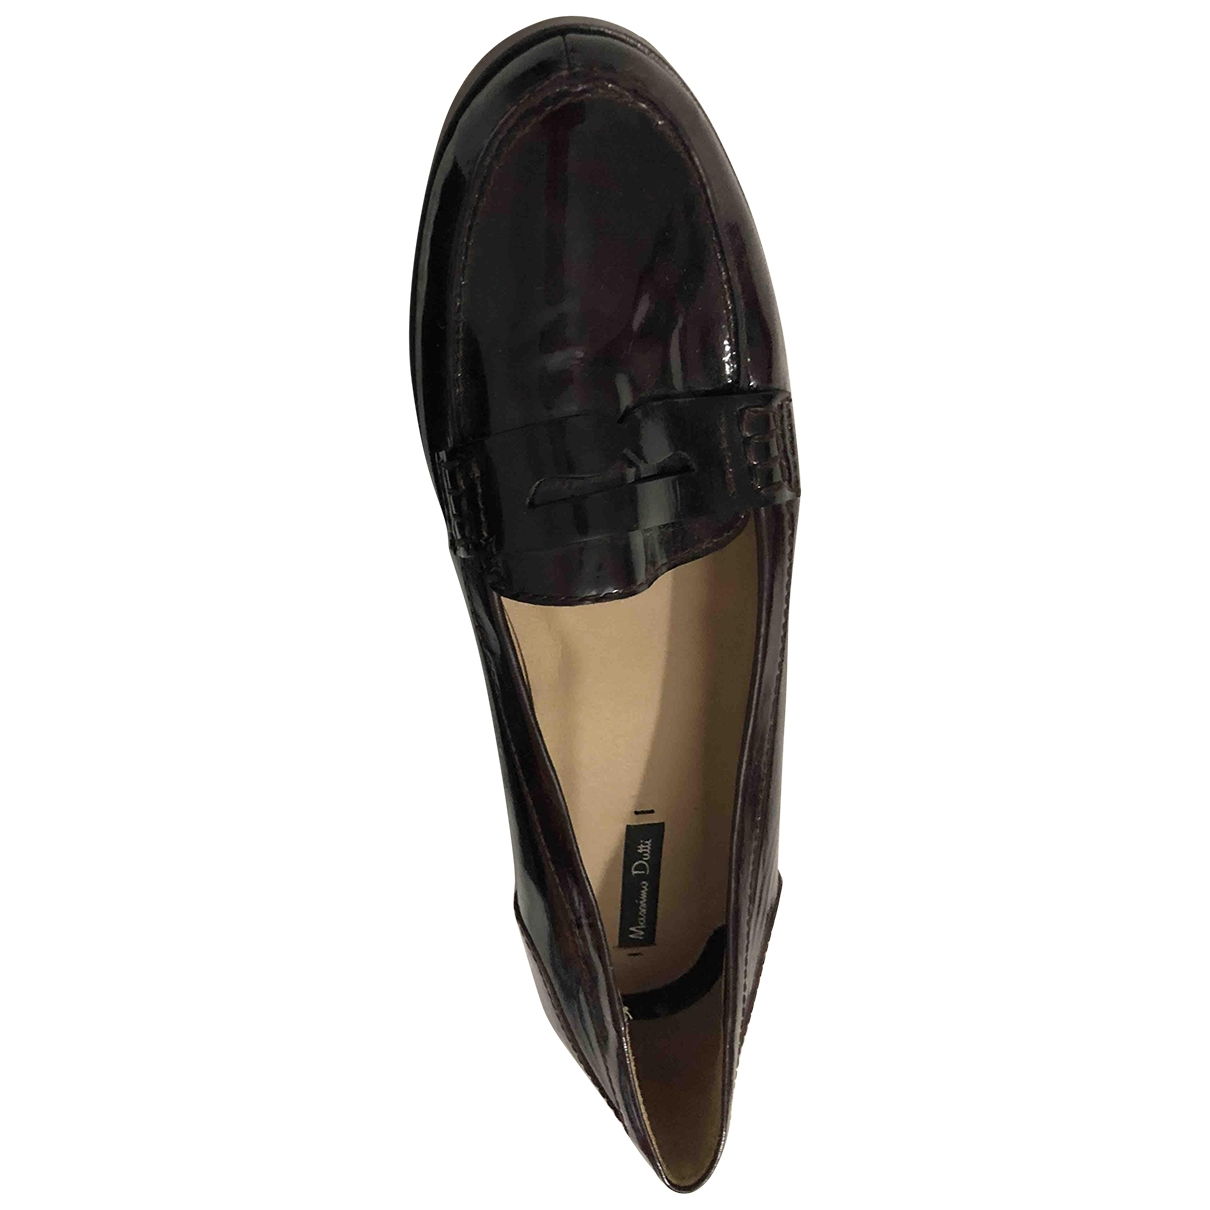 Massimo Dutti \N Burgundy Patent leather Flats for Women 40 EU